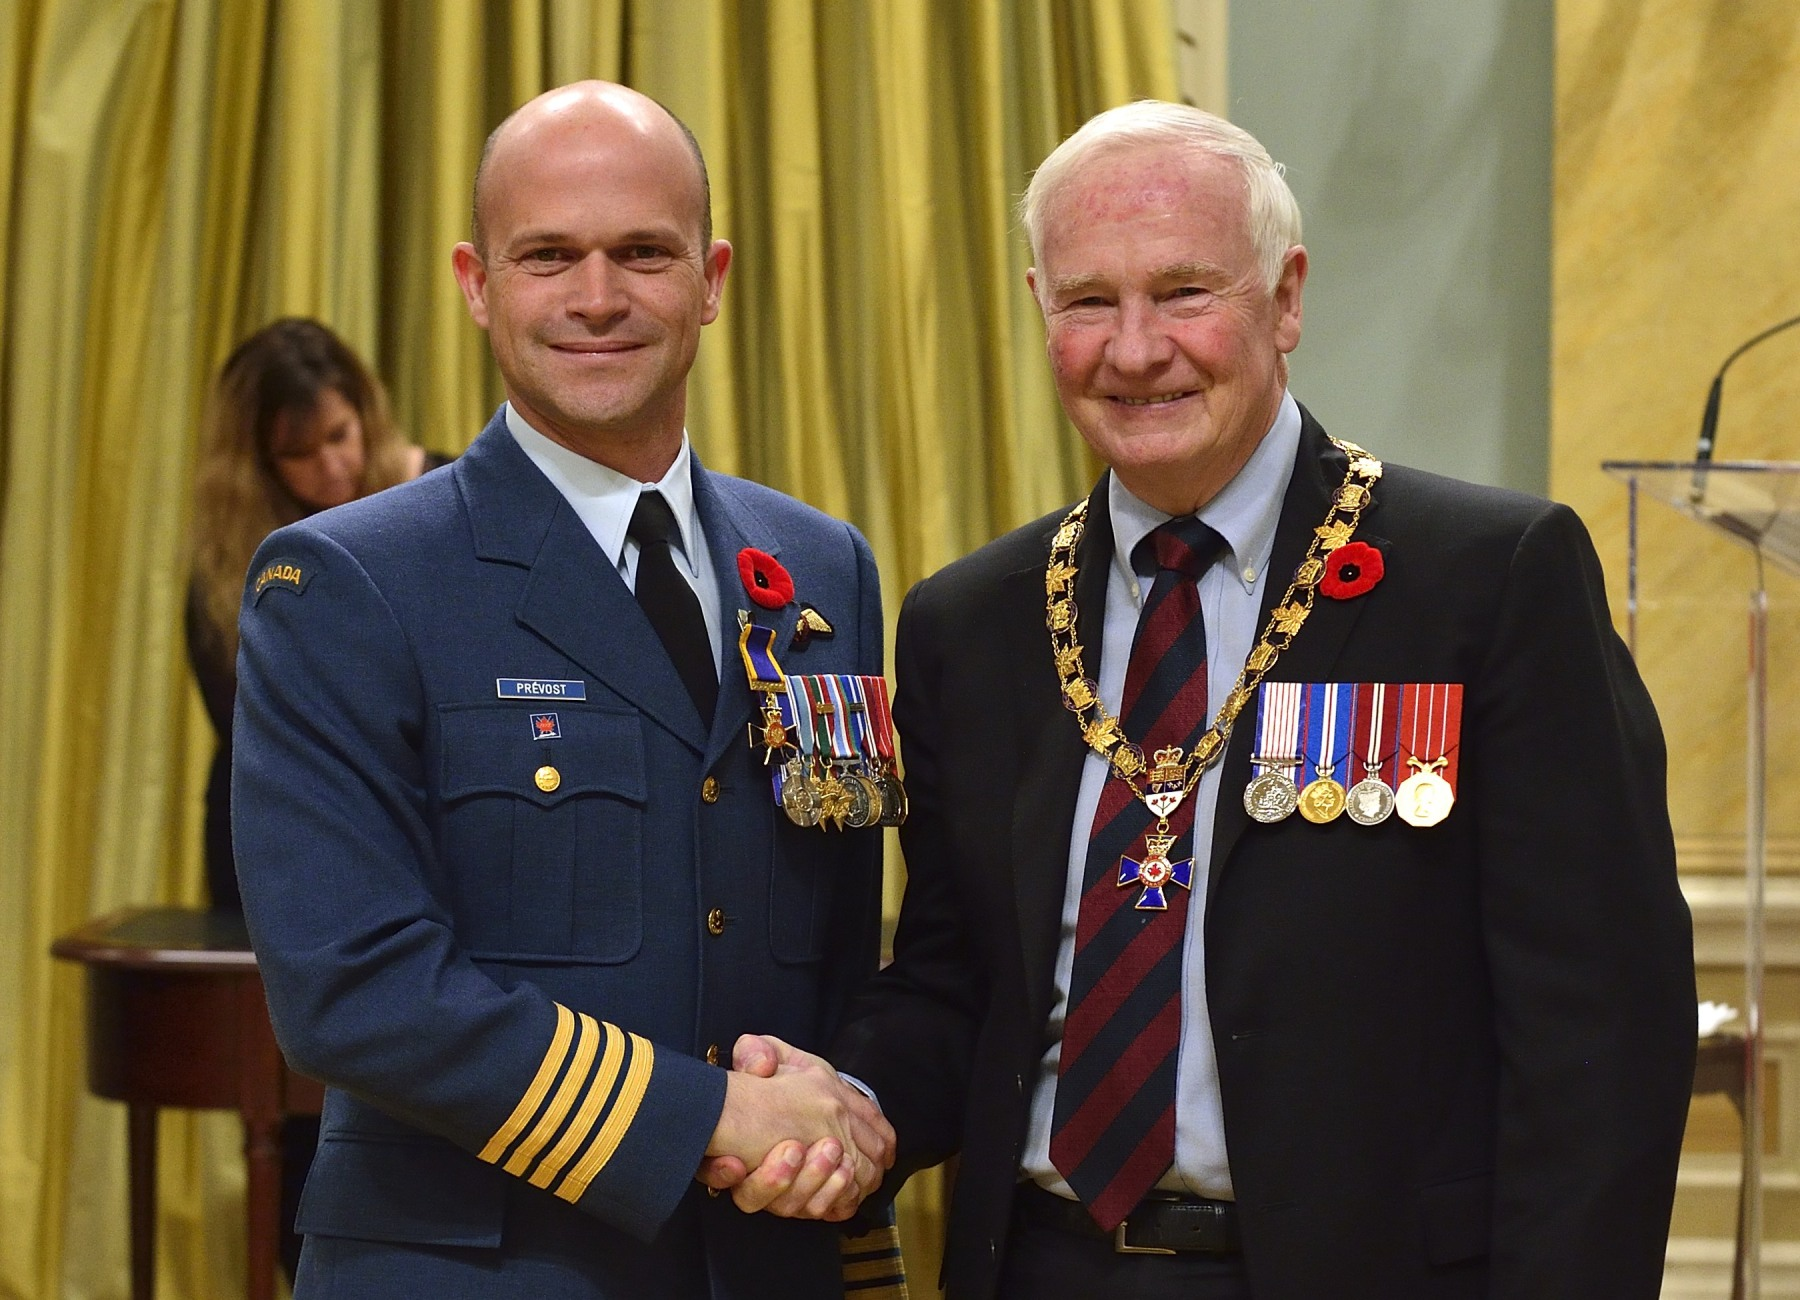 His Excellency presented the Order of Military Merit at the Officer level (O.M.M.) to Colonel Paul Prévost, O.M.M., M.S.M., C.D., 3 Wing, Alouette, Que.